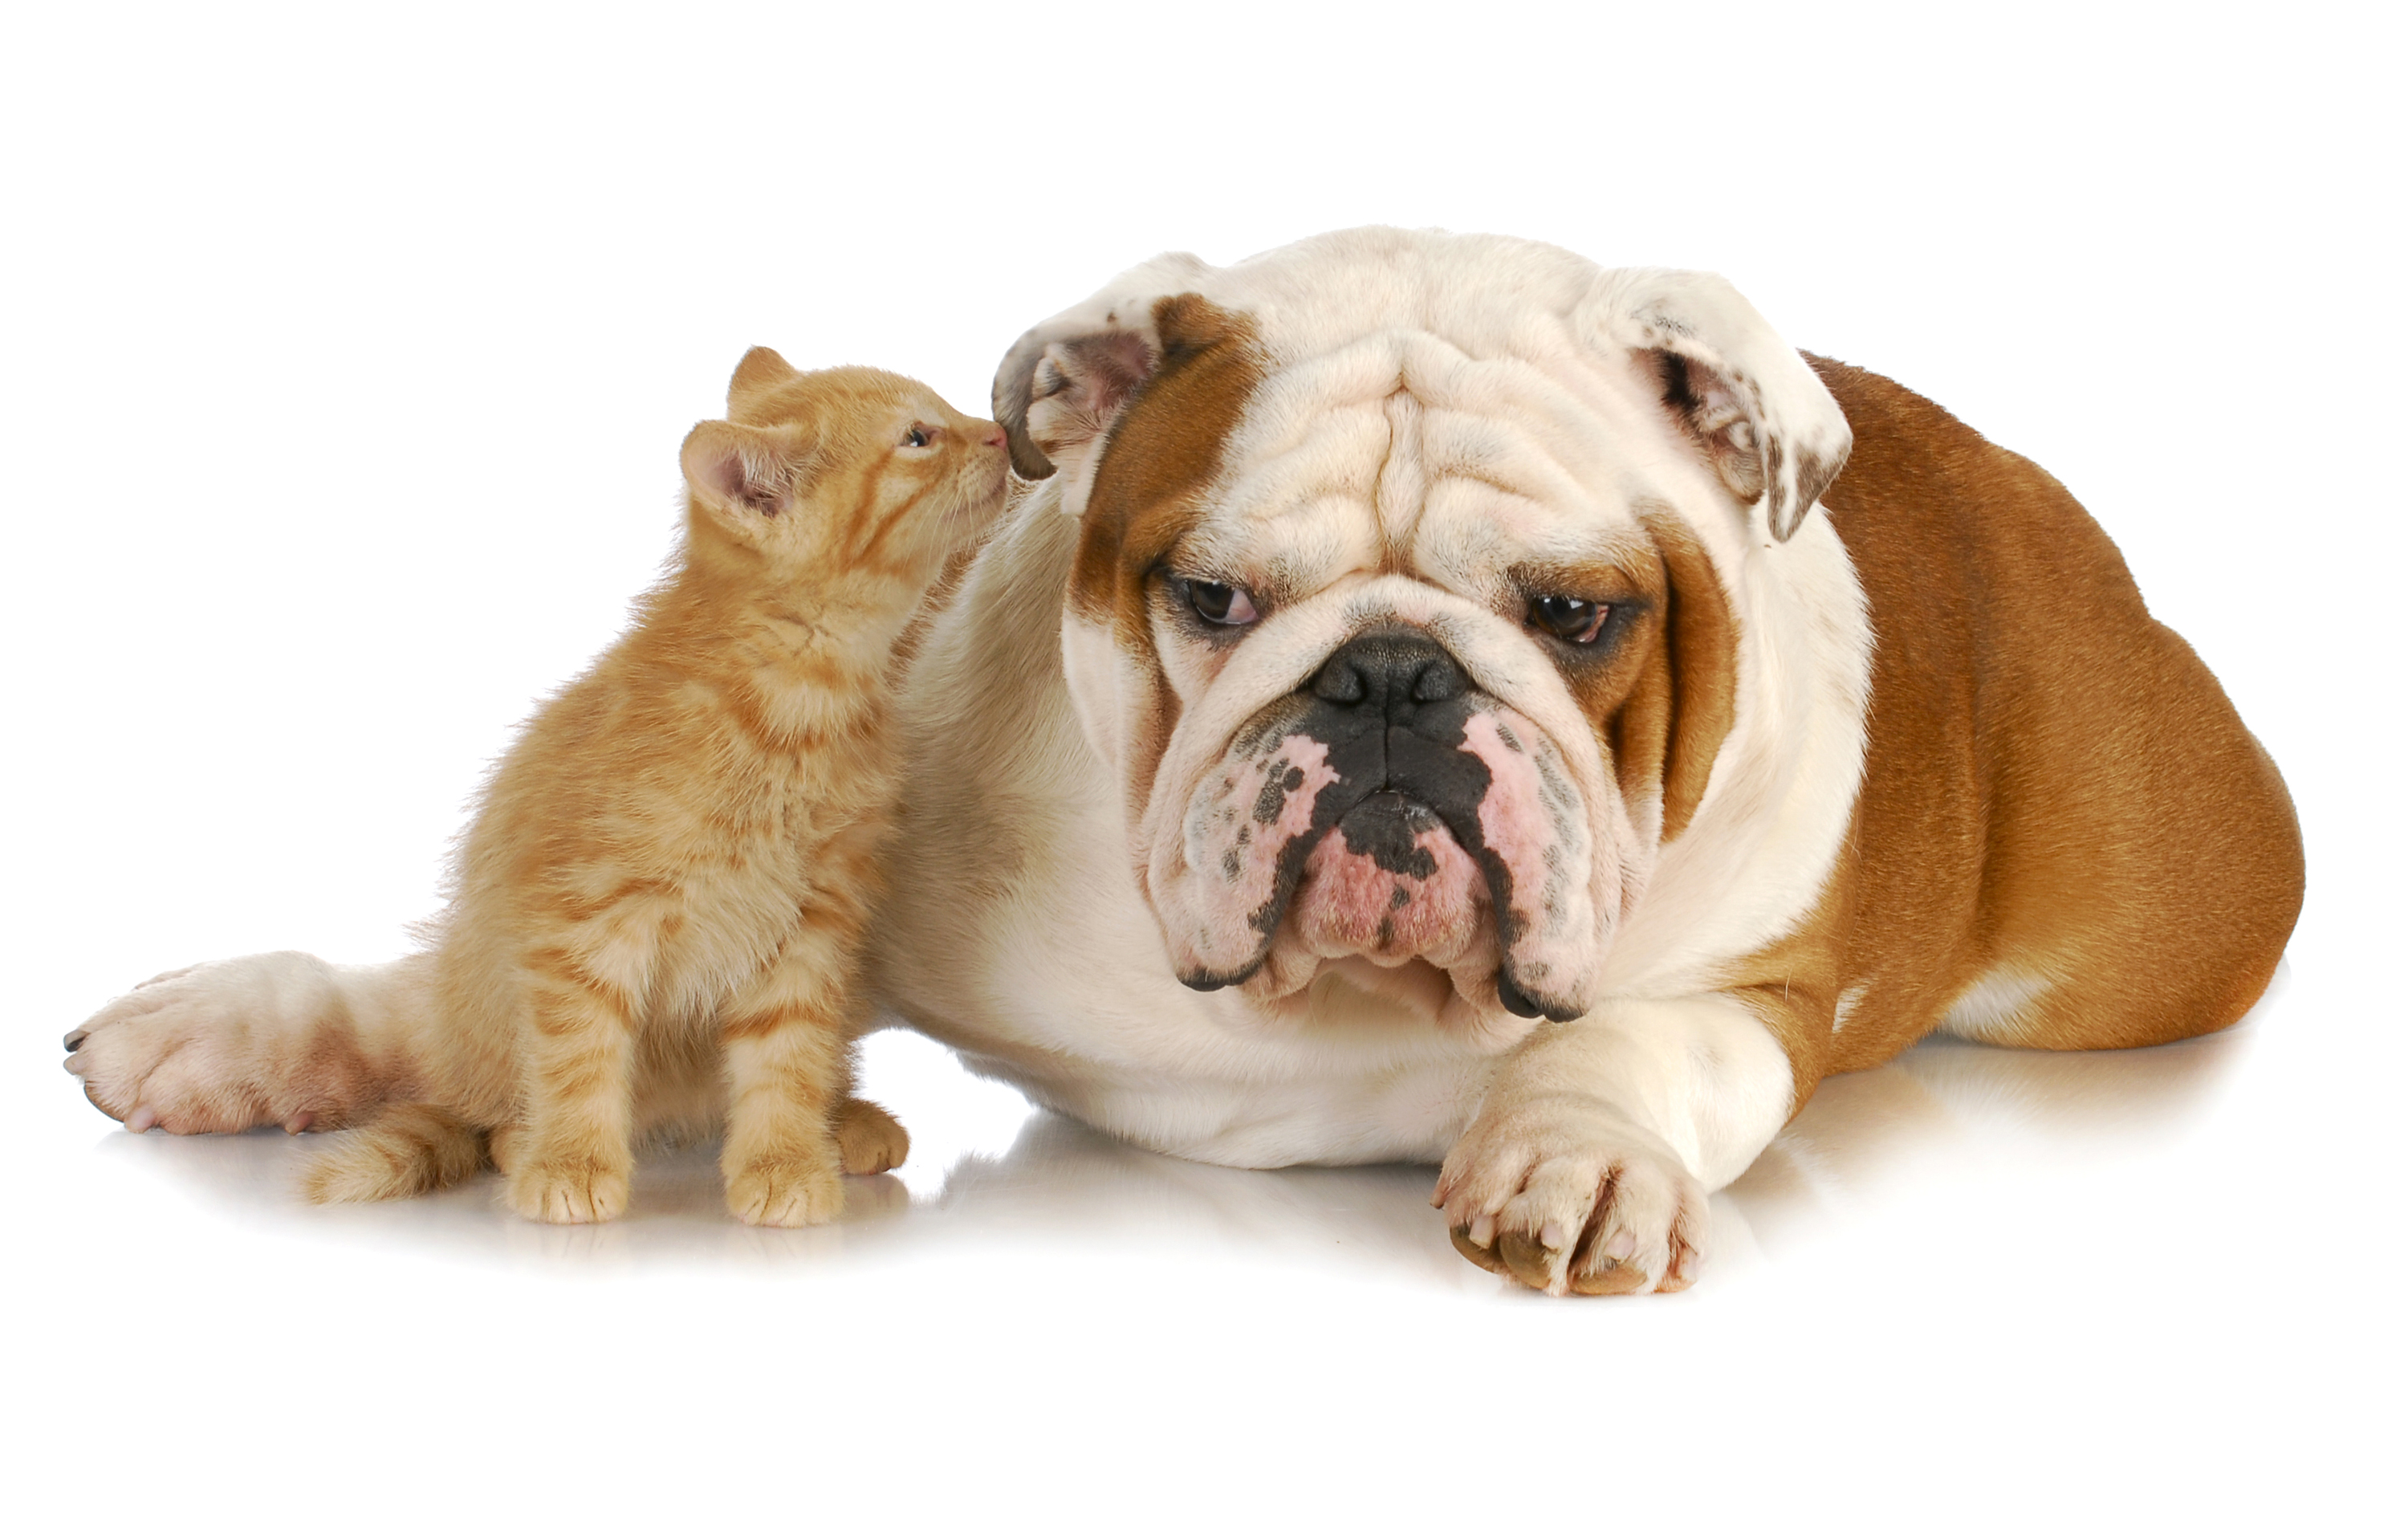 Picture Bulldog Kittens dog cat Two animal 3000x1892 kitty cat Dogs Cats 2 Animals